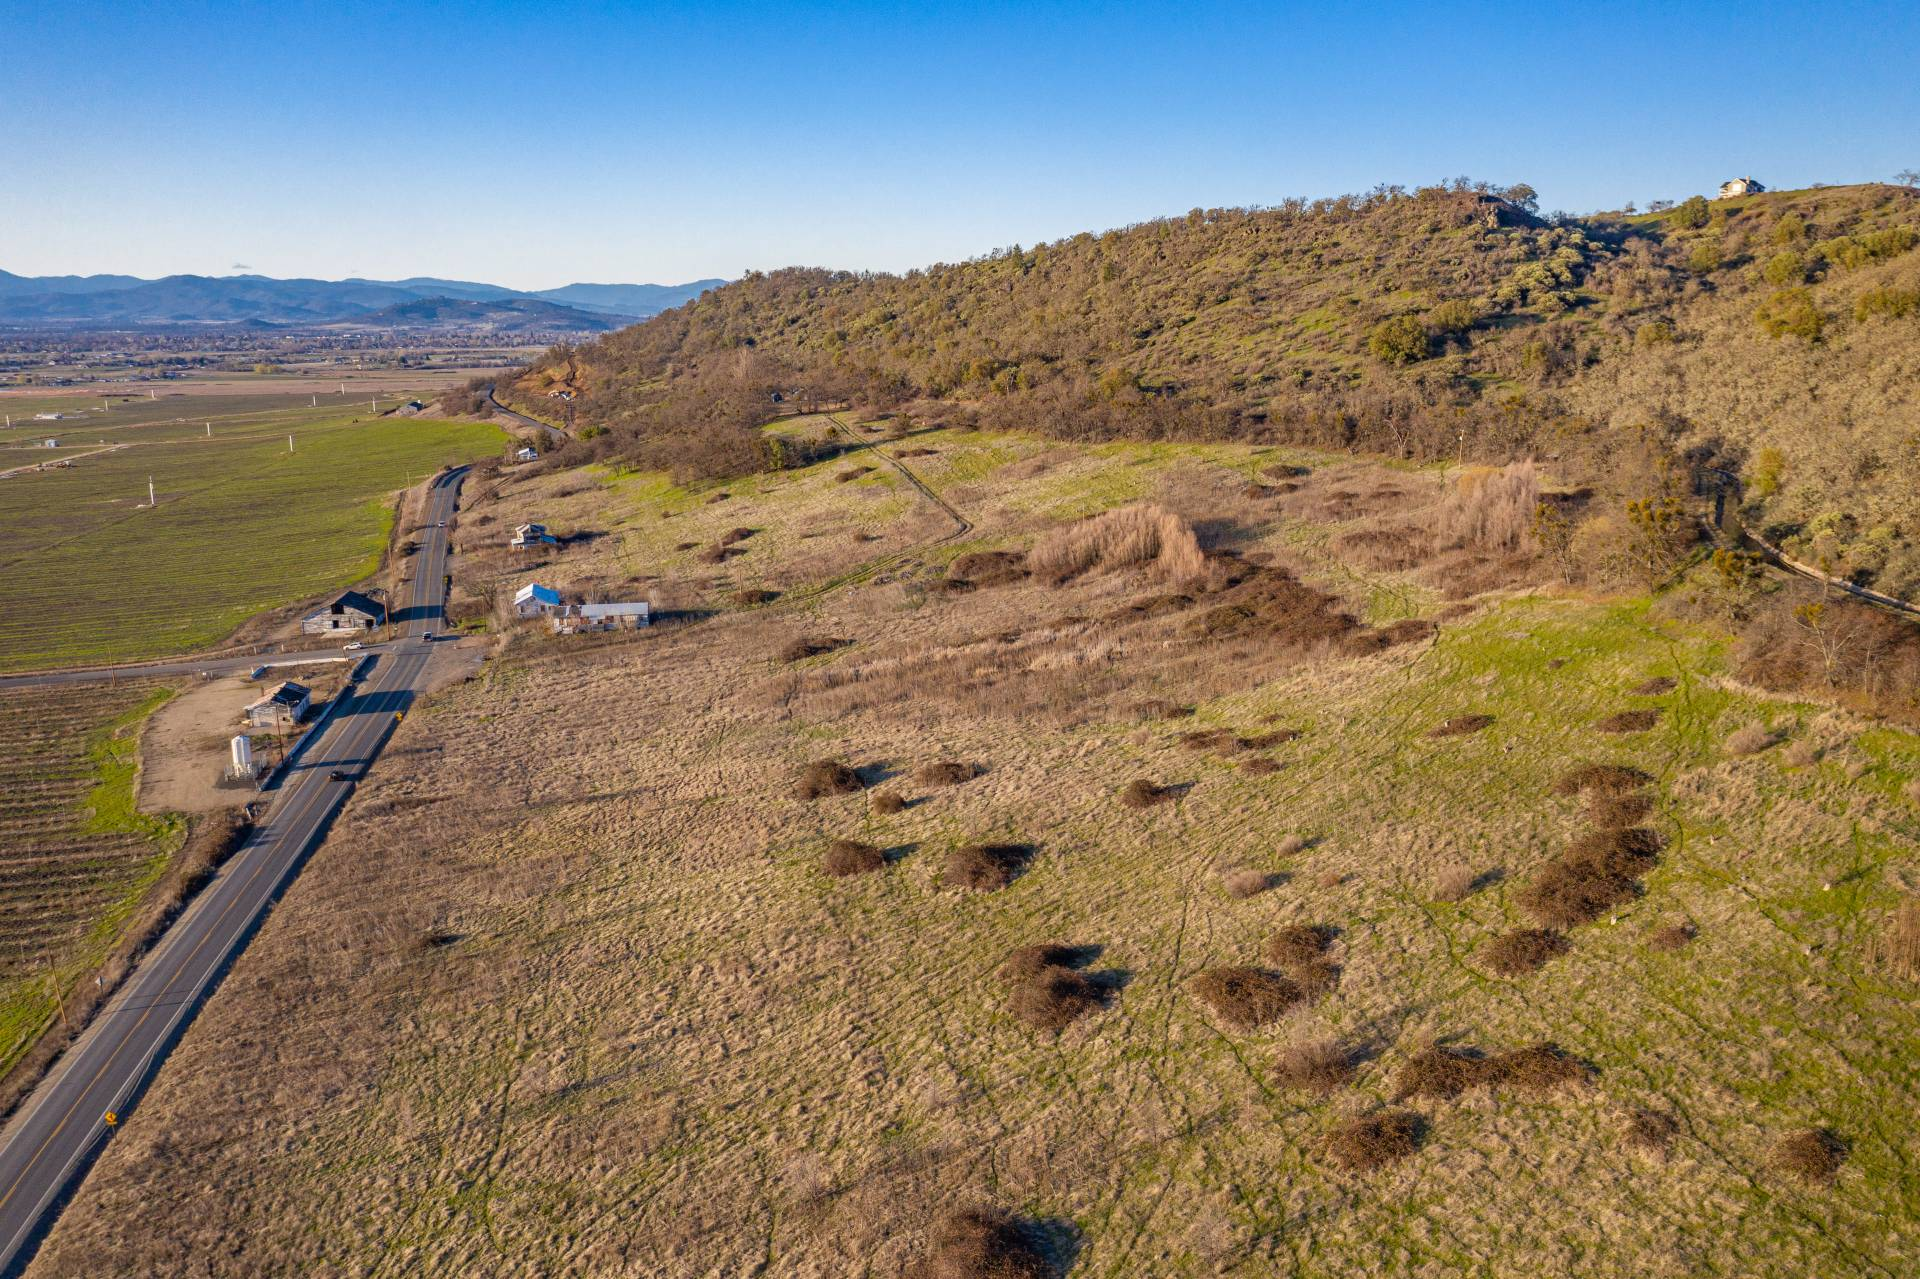 Foothills Irrigated Farm – East Offering